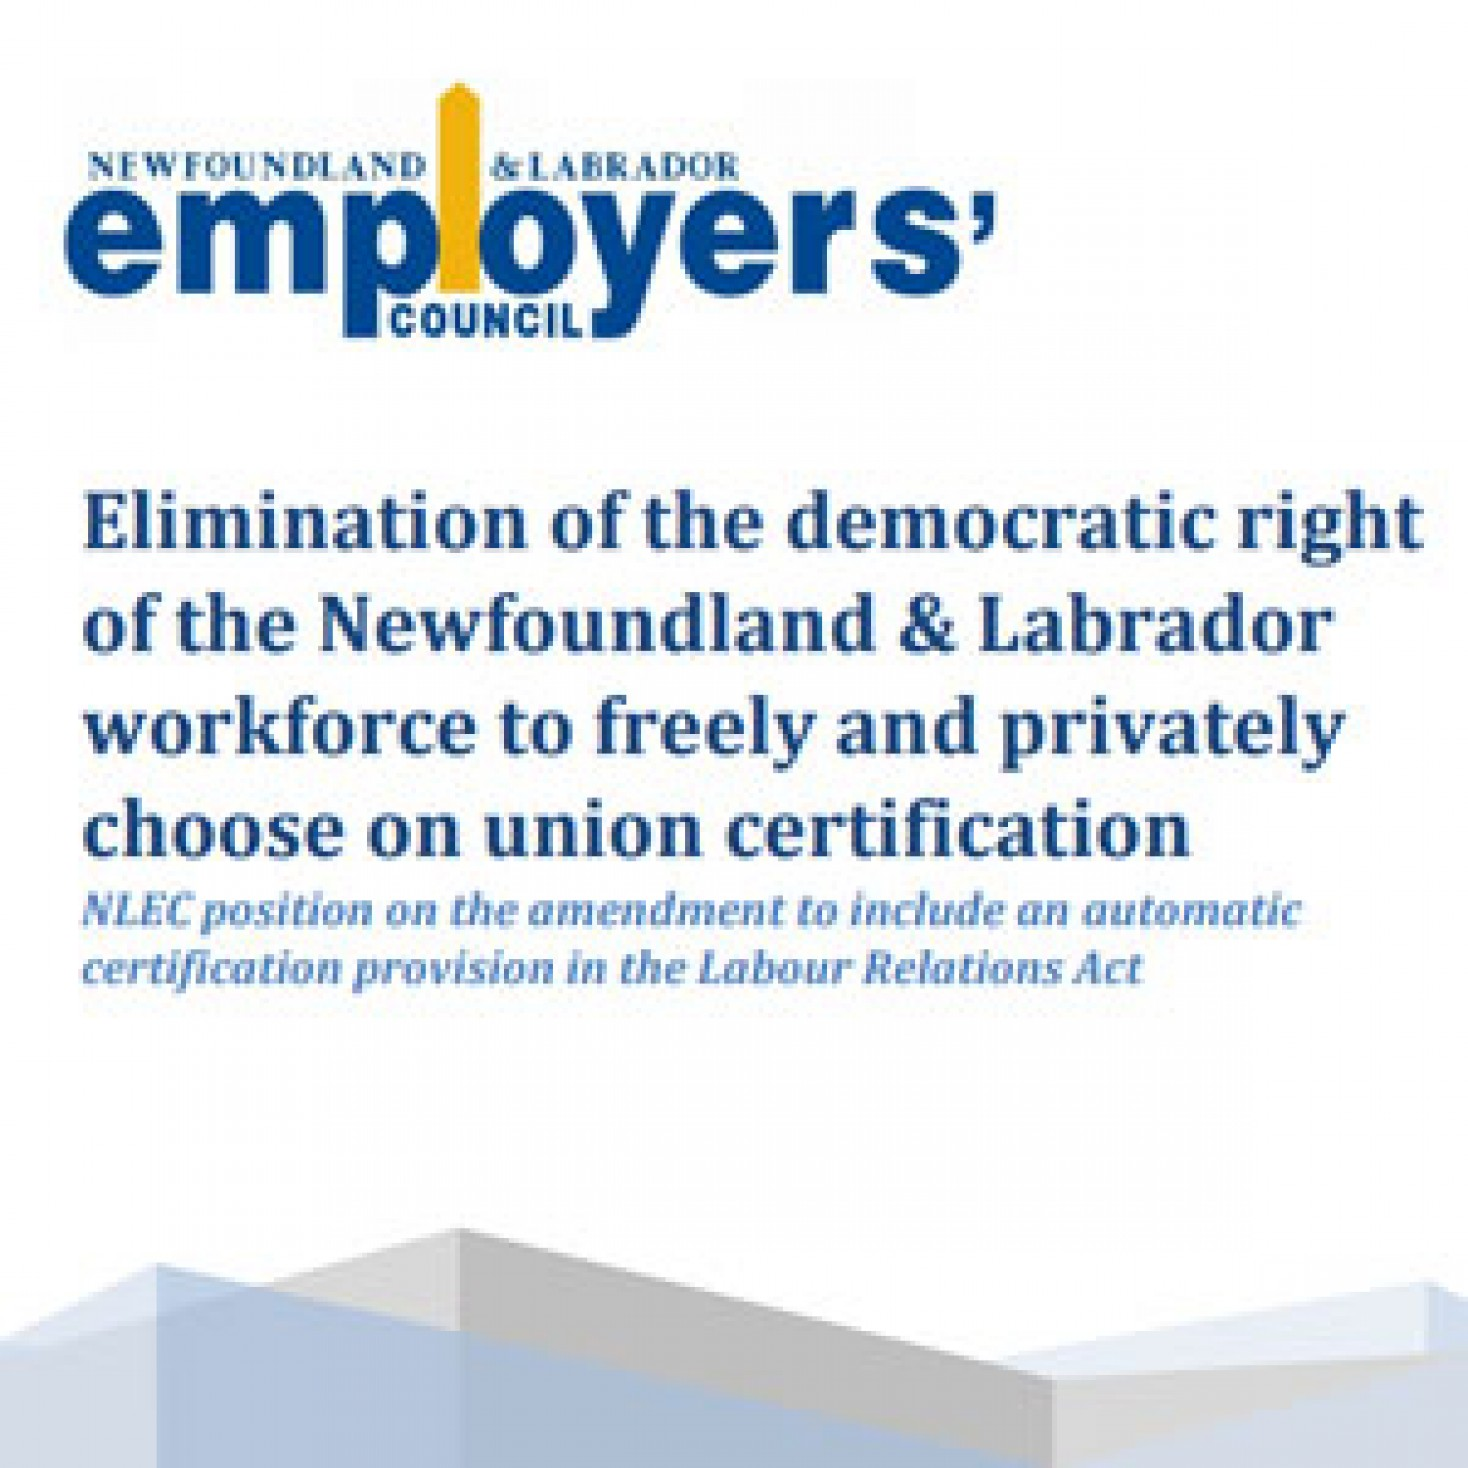 Elimination of the democratic right of the Newfoundland & Labrador workforce to freely and privately choose on union certification